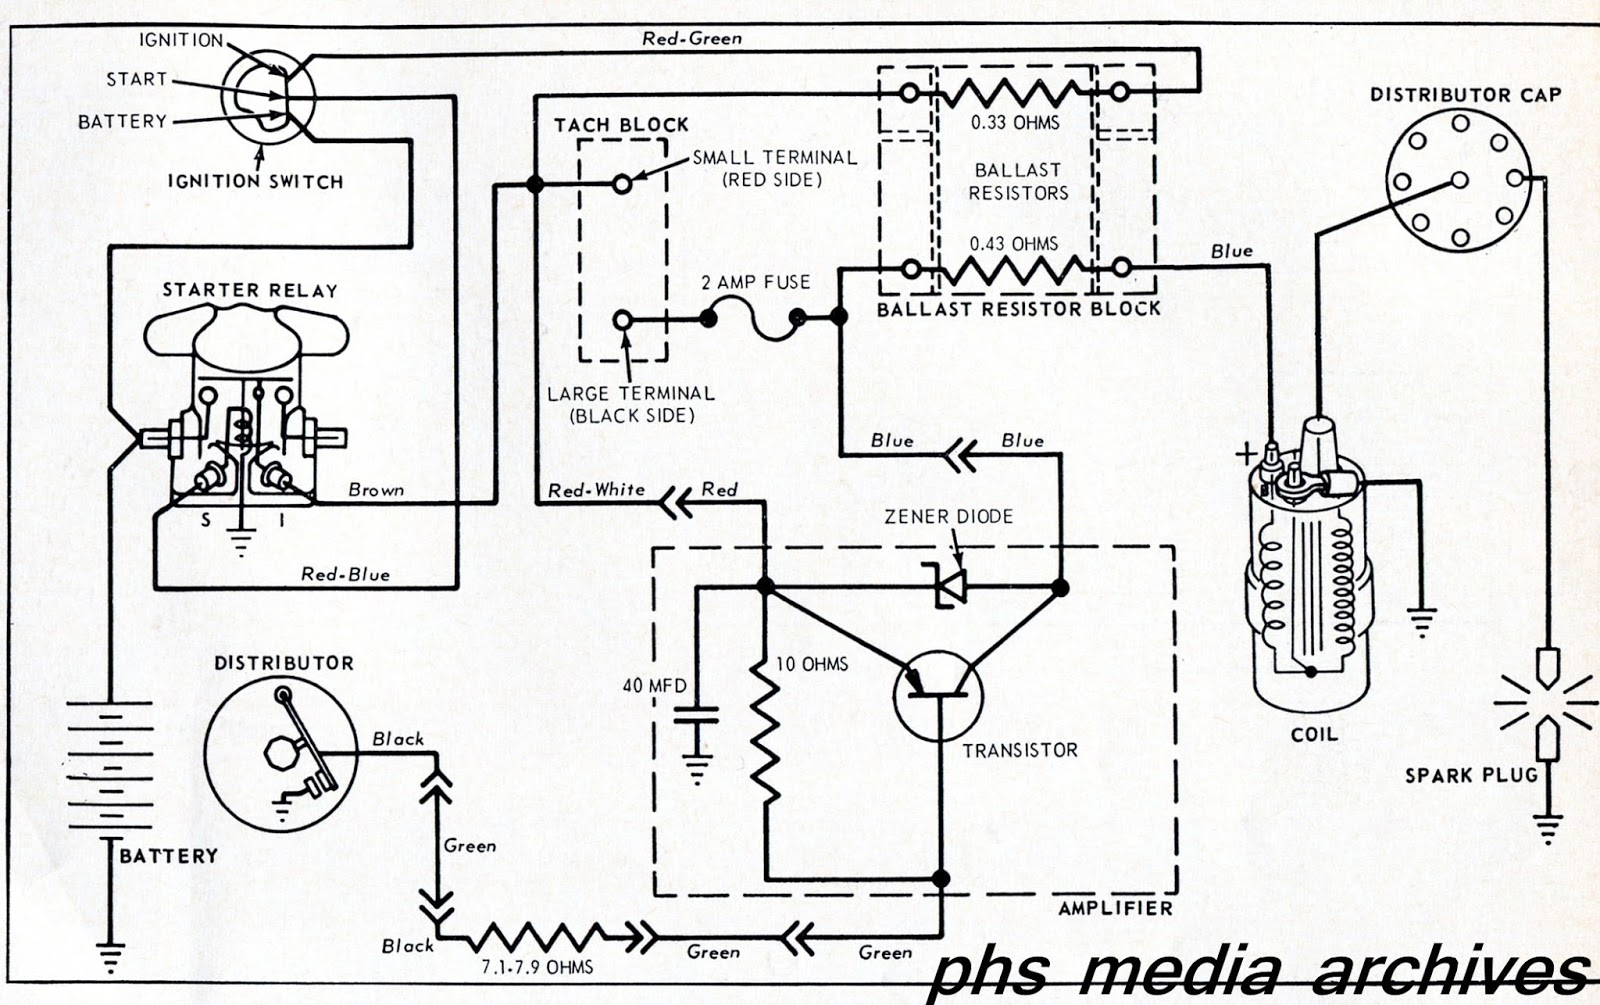 Transistorized Ignition System